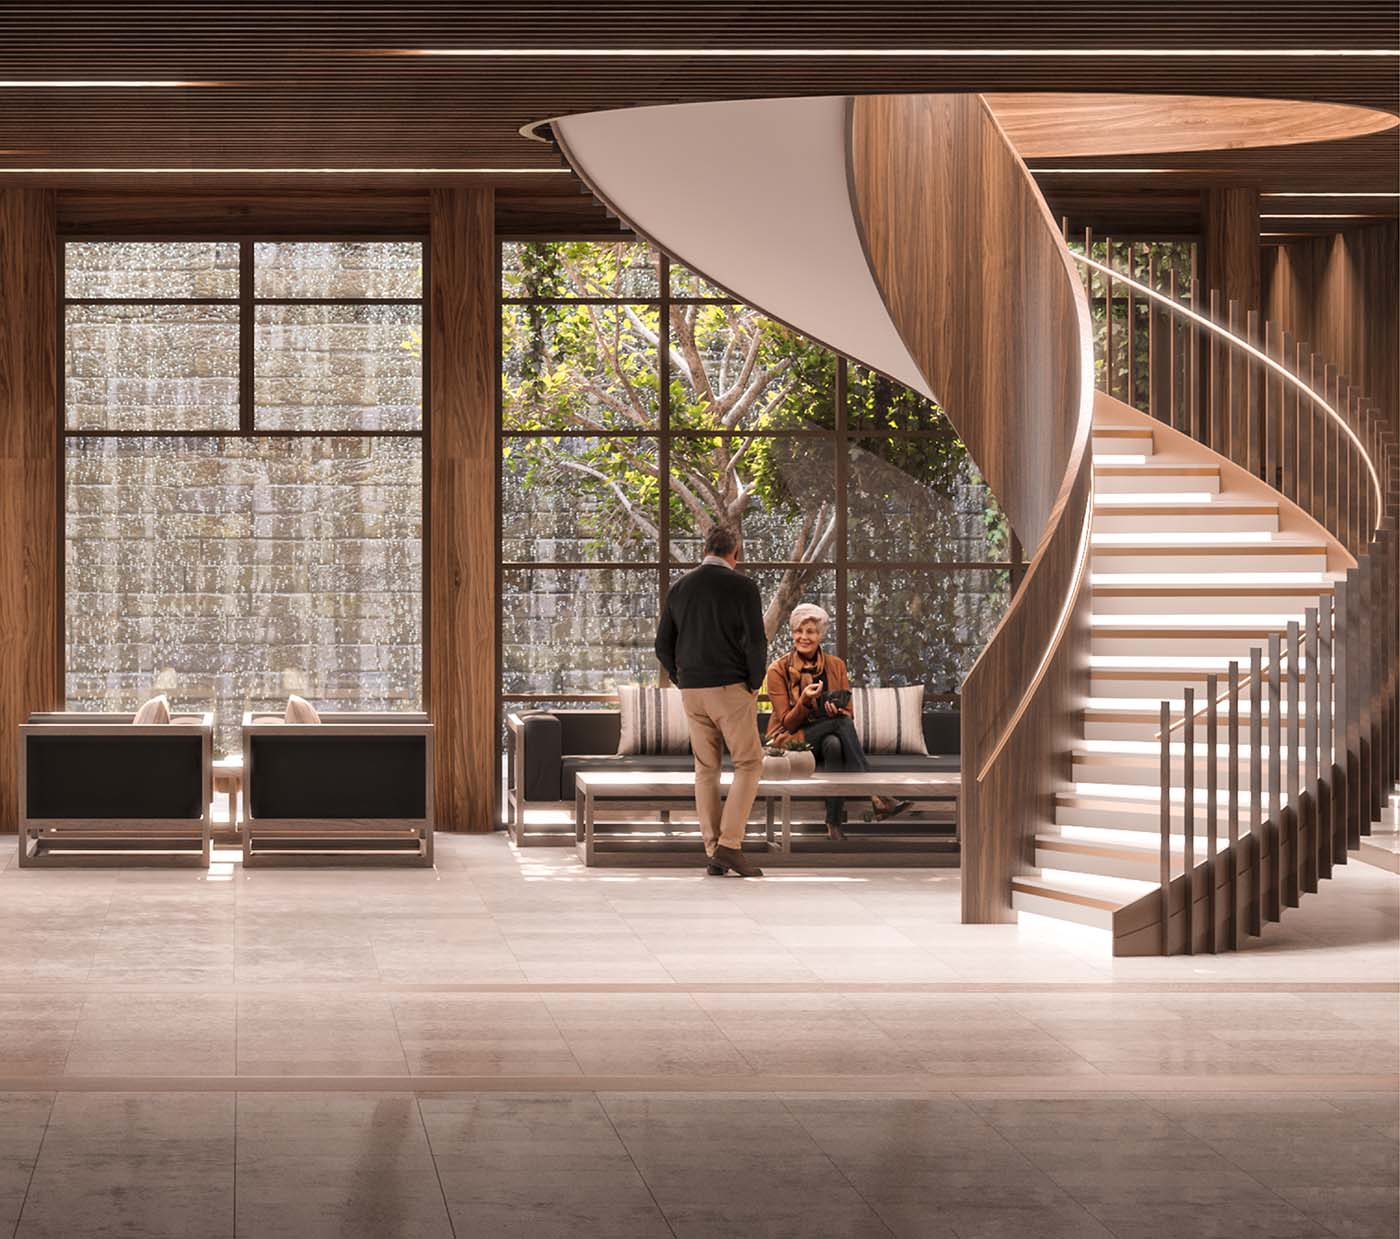 Wellness foyer of a retirement village with people sitting and talking near a spiral staircase.